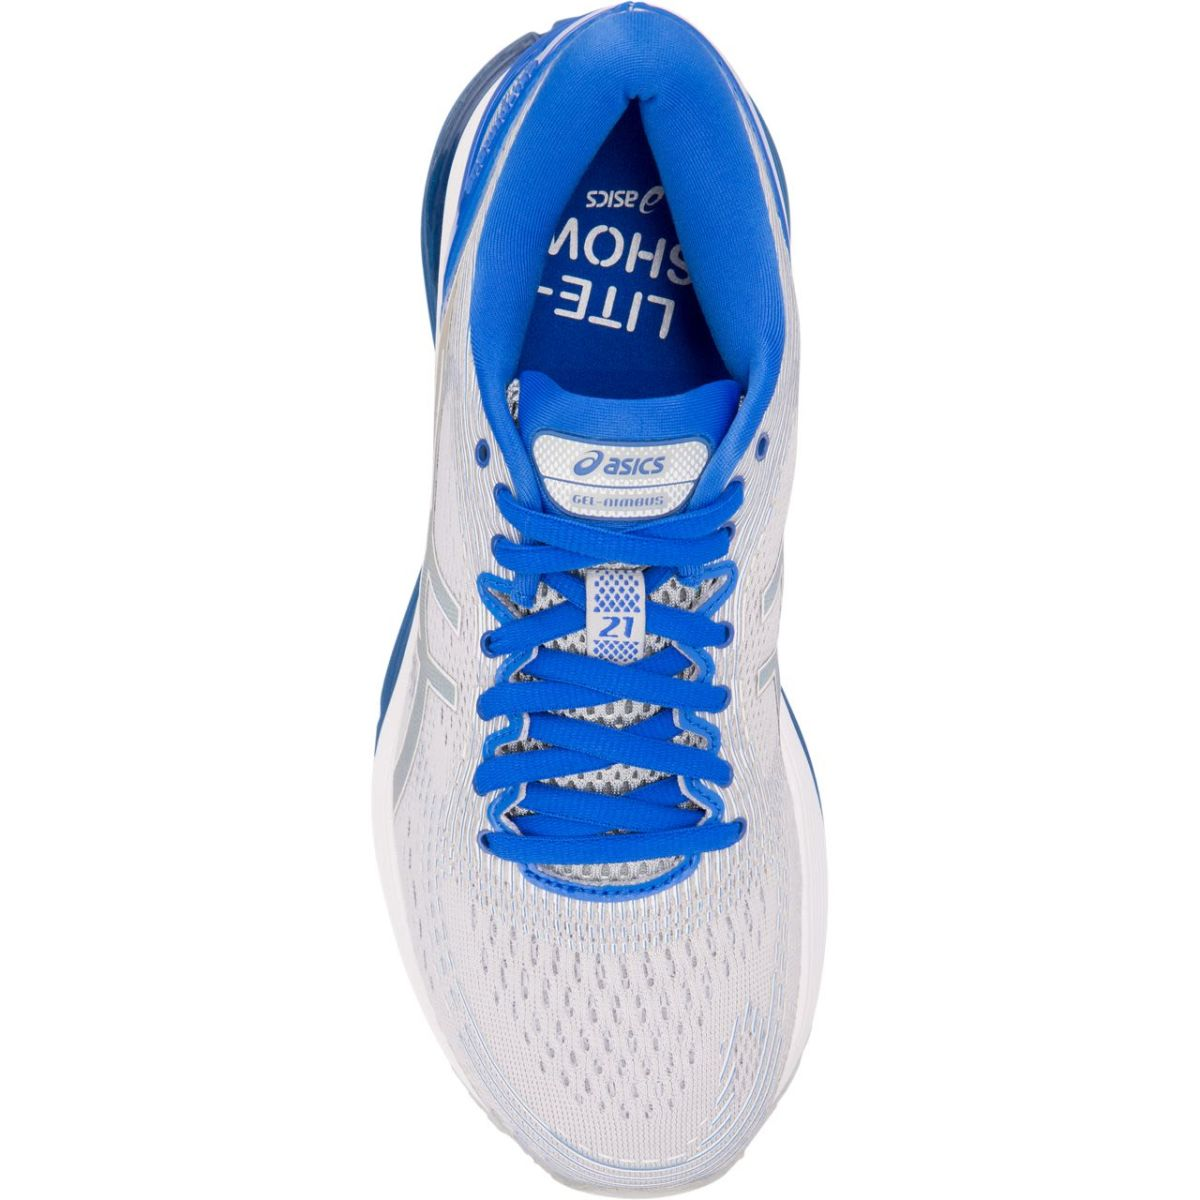 0d62b3850 Zapatilla - Asics - Gel Nimbus 21 Lite Show - Mid Grey Illusion Blue ...